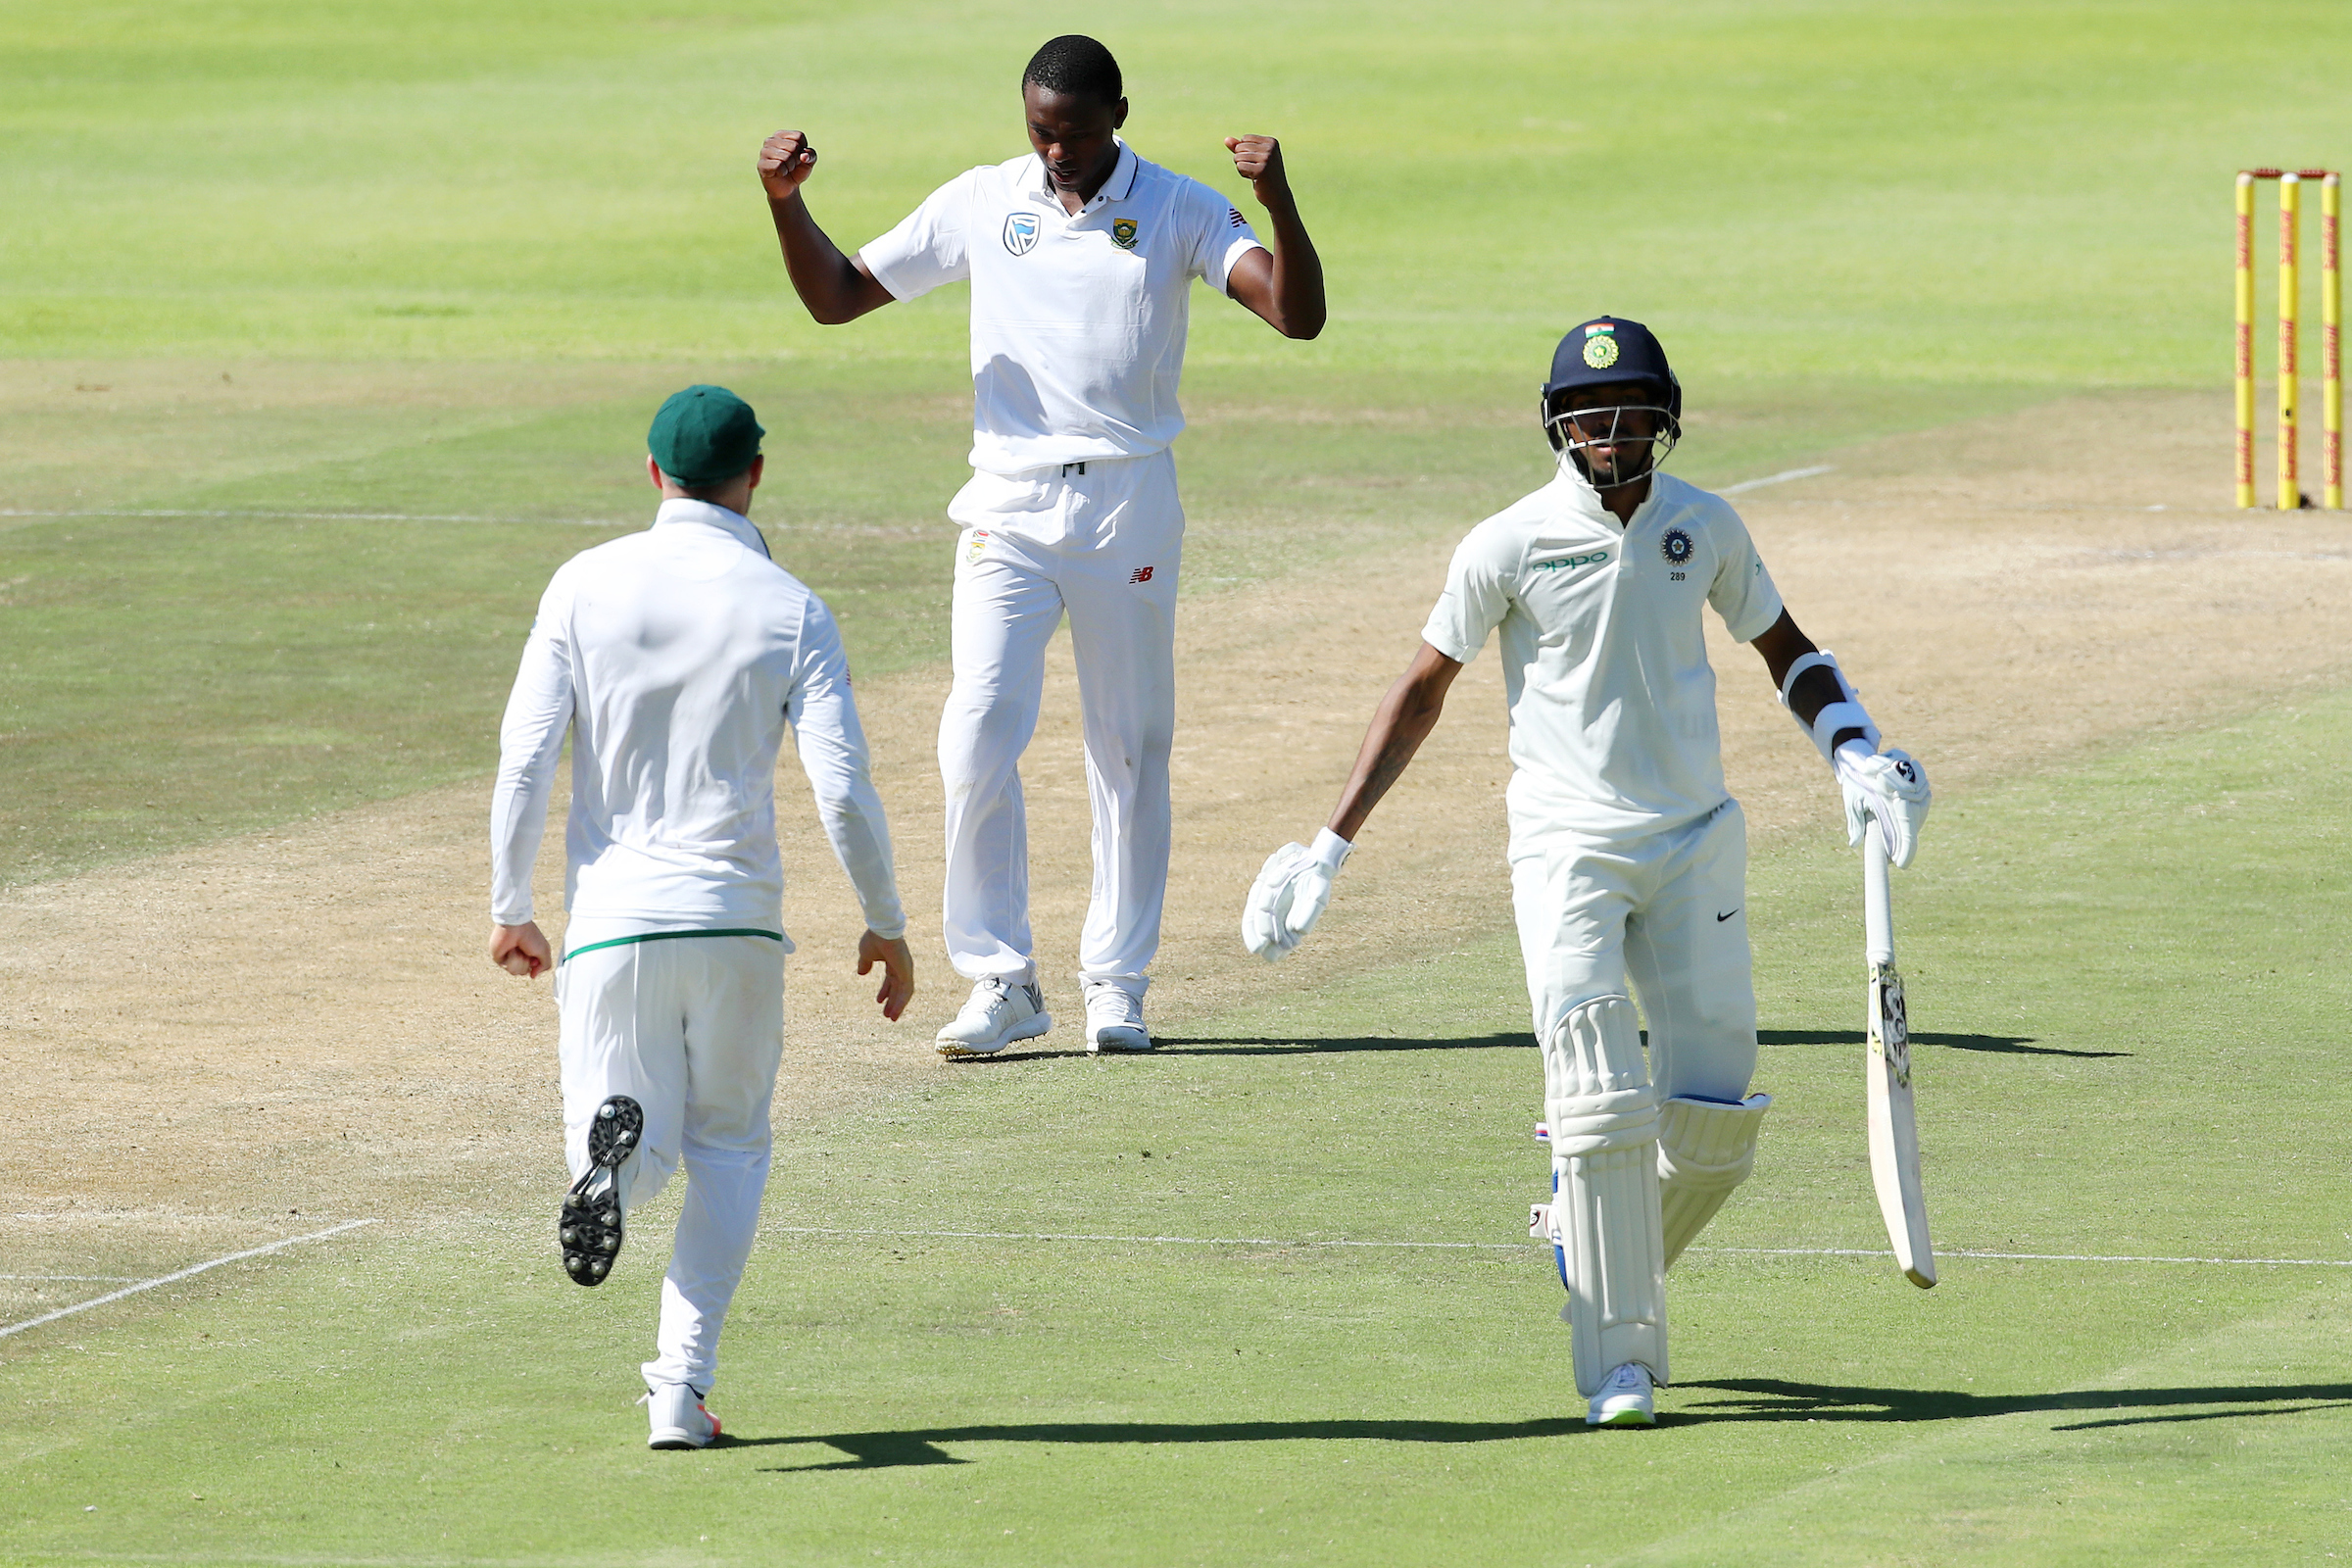 Duane Olivier, Lungi Ngidi added to South Africa squad for second Test